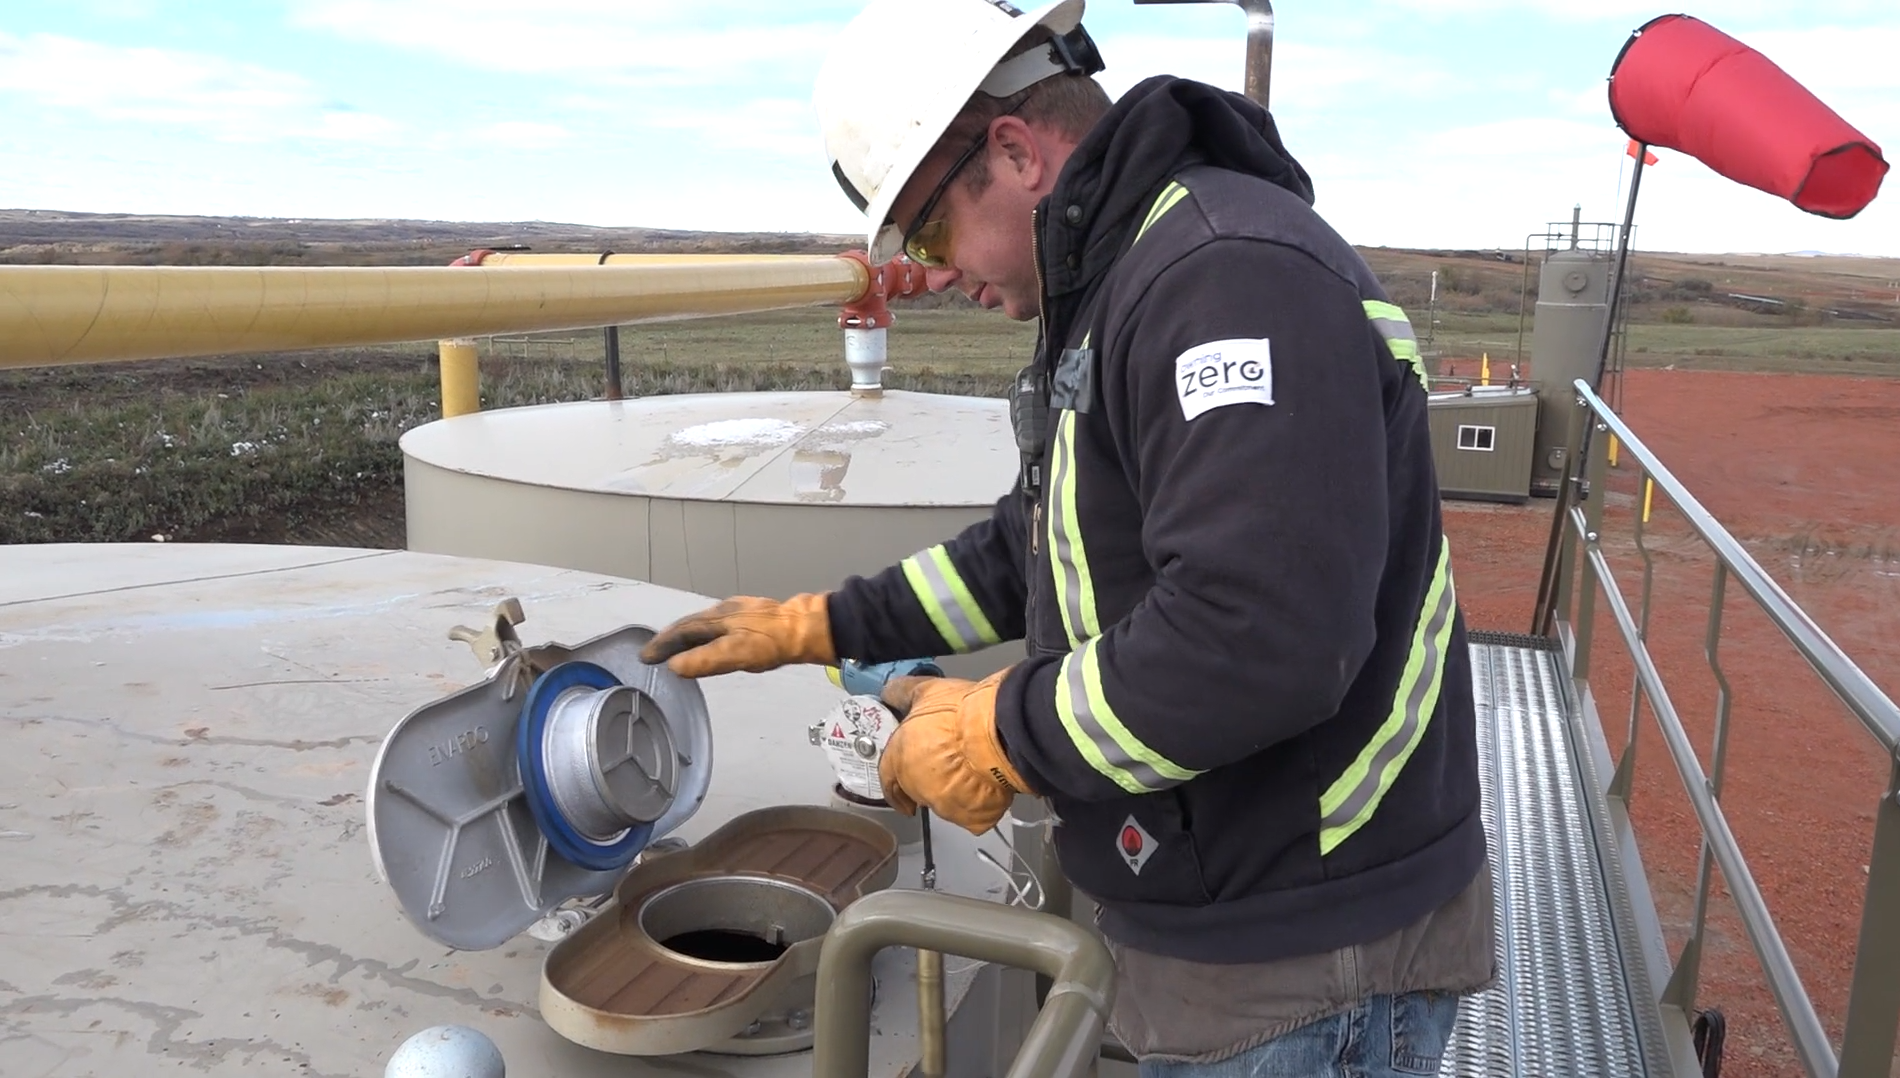 Worker gauging an oilfield tank. Tank sampling is one of the main ways in which oilfield workers may be exposed to harmful vapors.